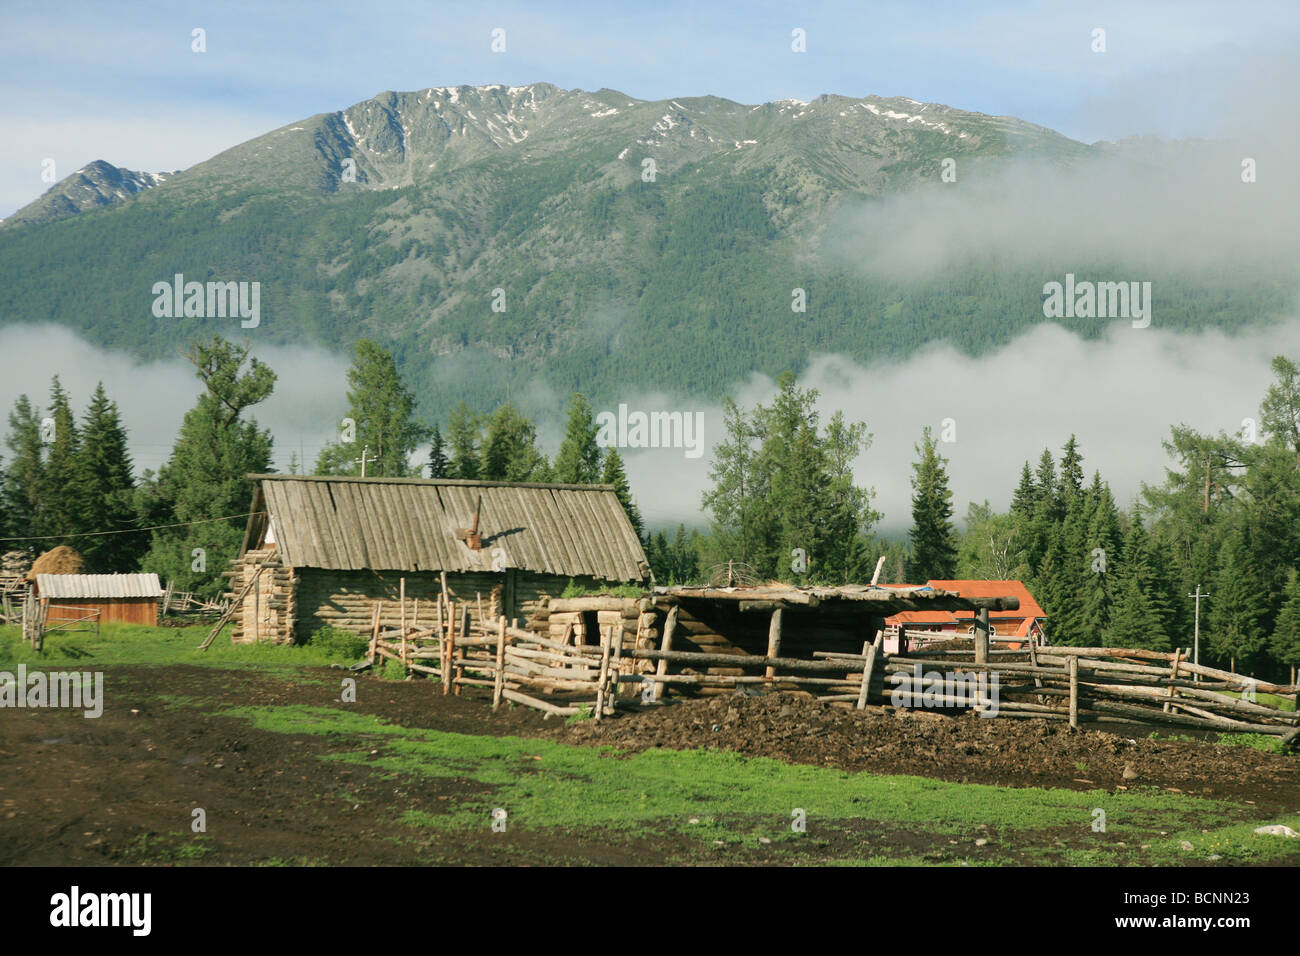 Wooden shed at the foot of hill, Kanas Conservation, Xinjiang Uyghur Autonomous Region, China - Stock Image